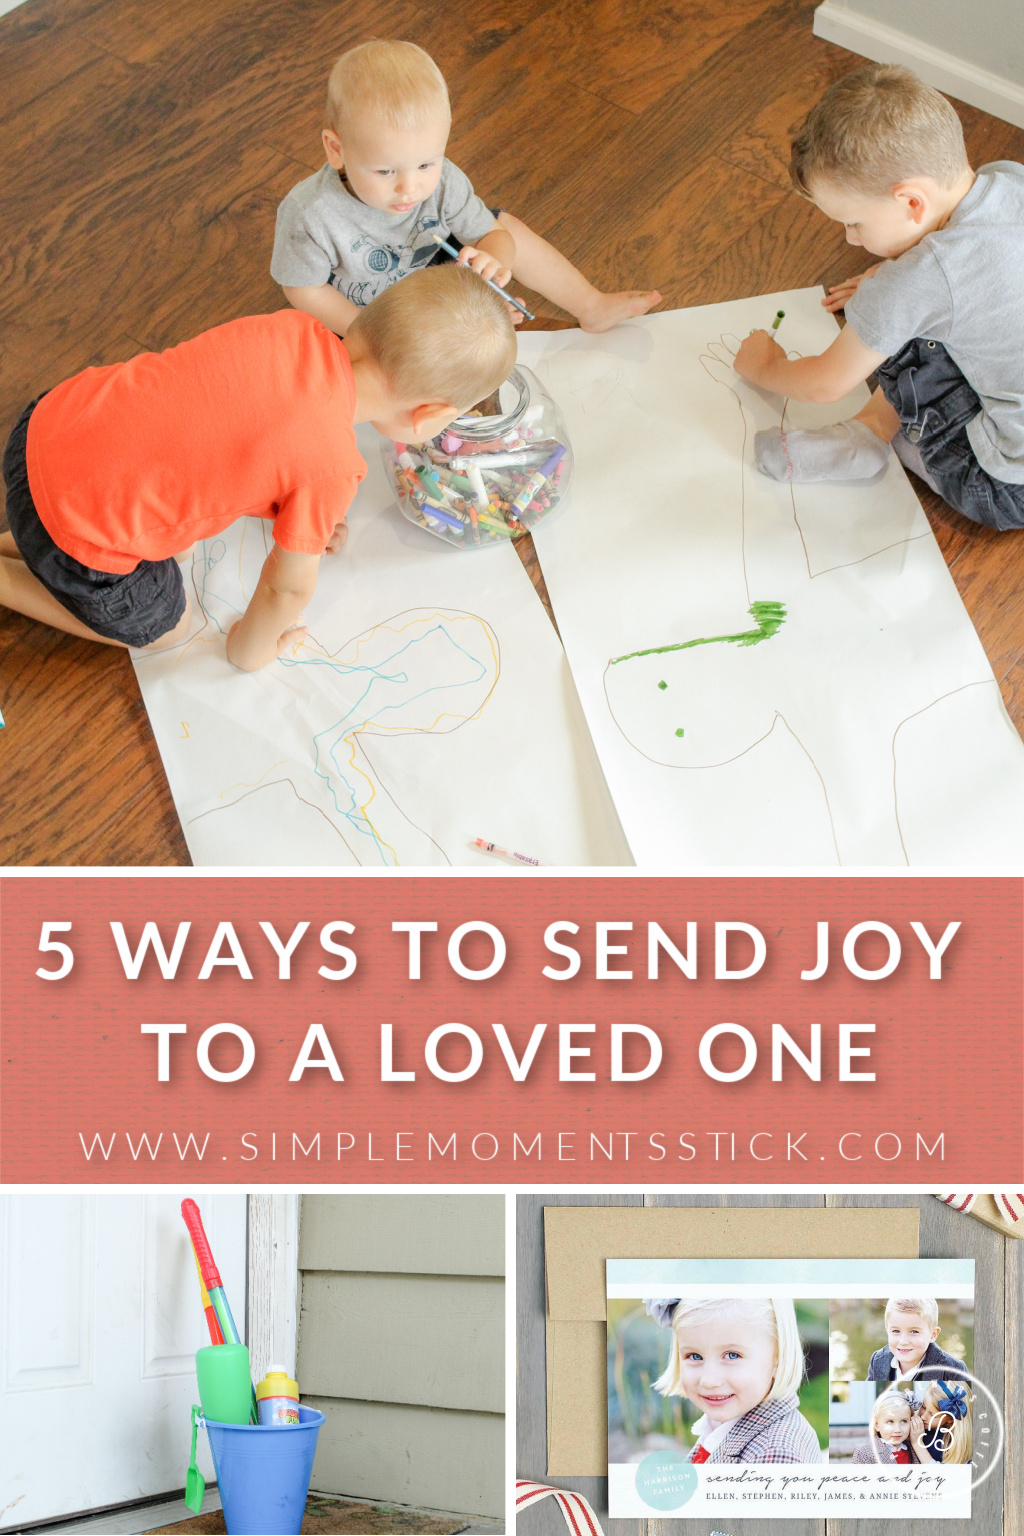 How to bring joy to others